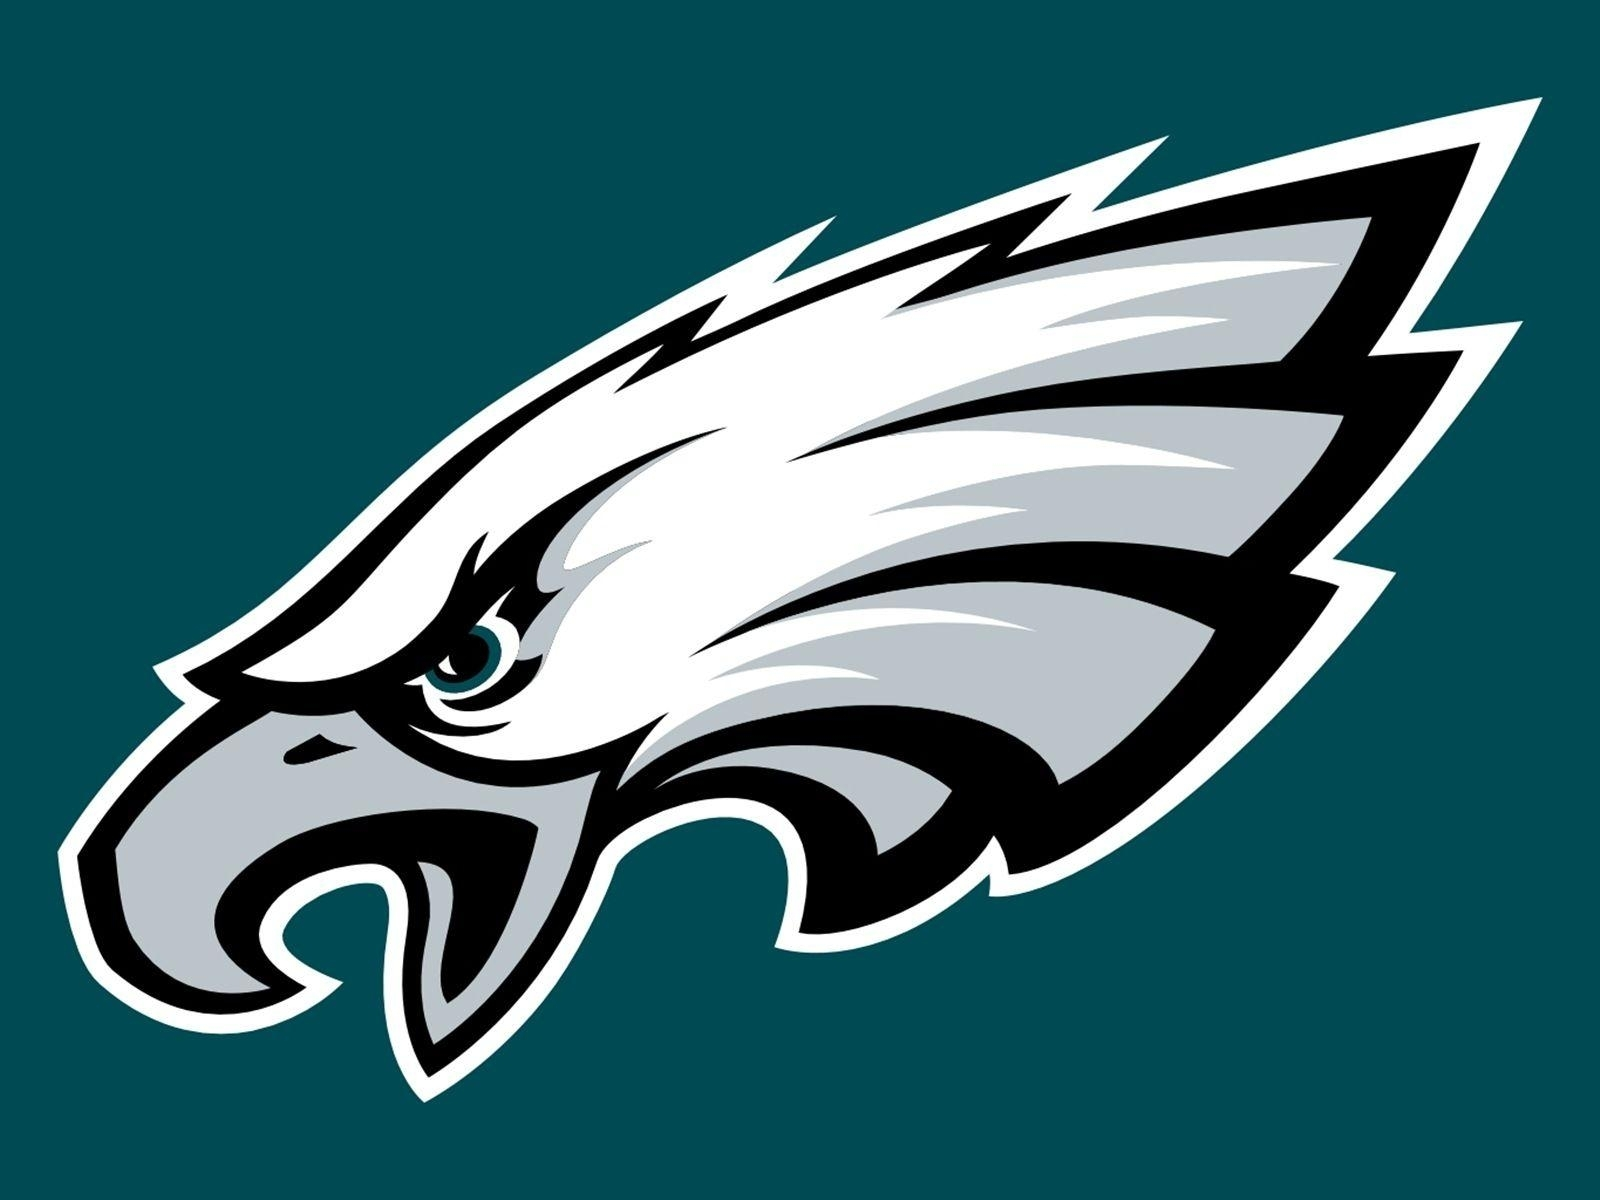 eagles logo wallpapers - wallpaper cave